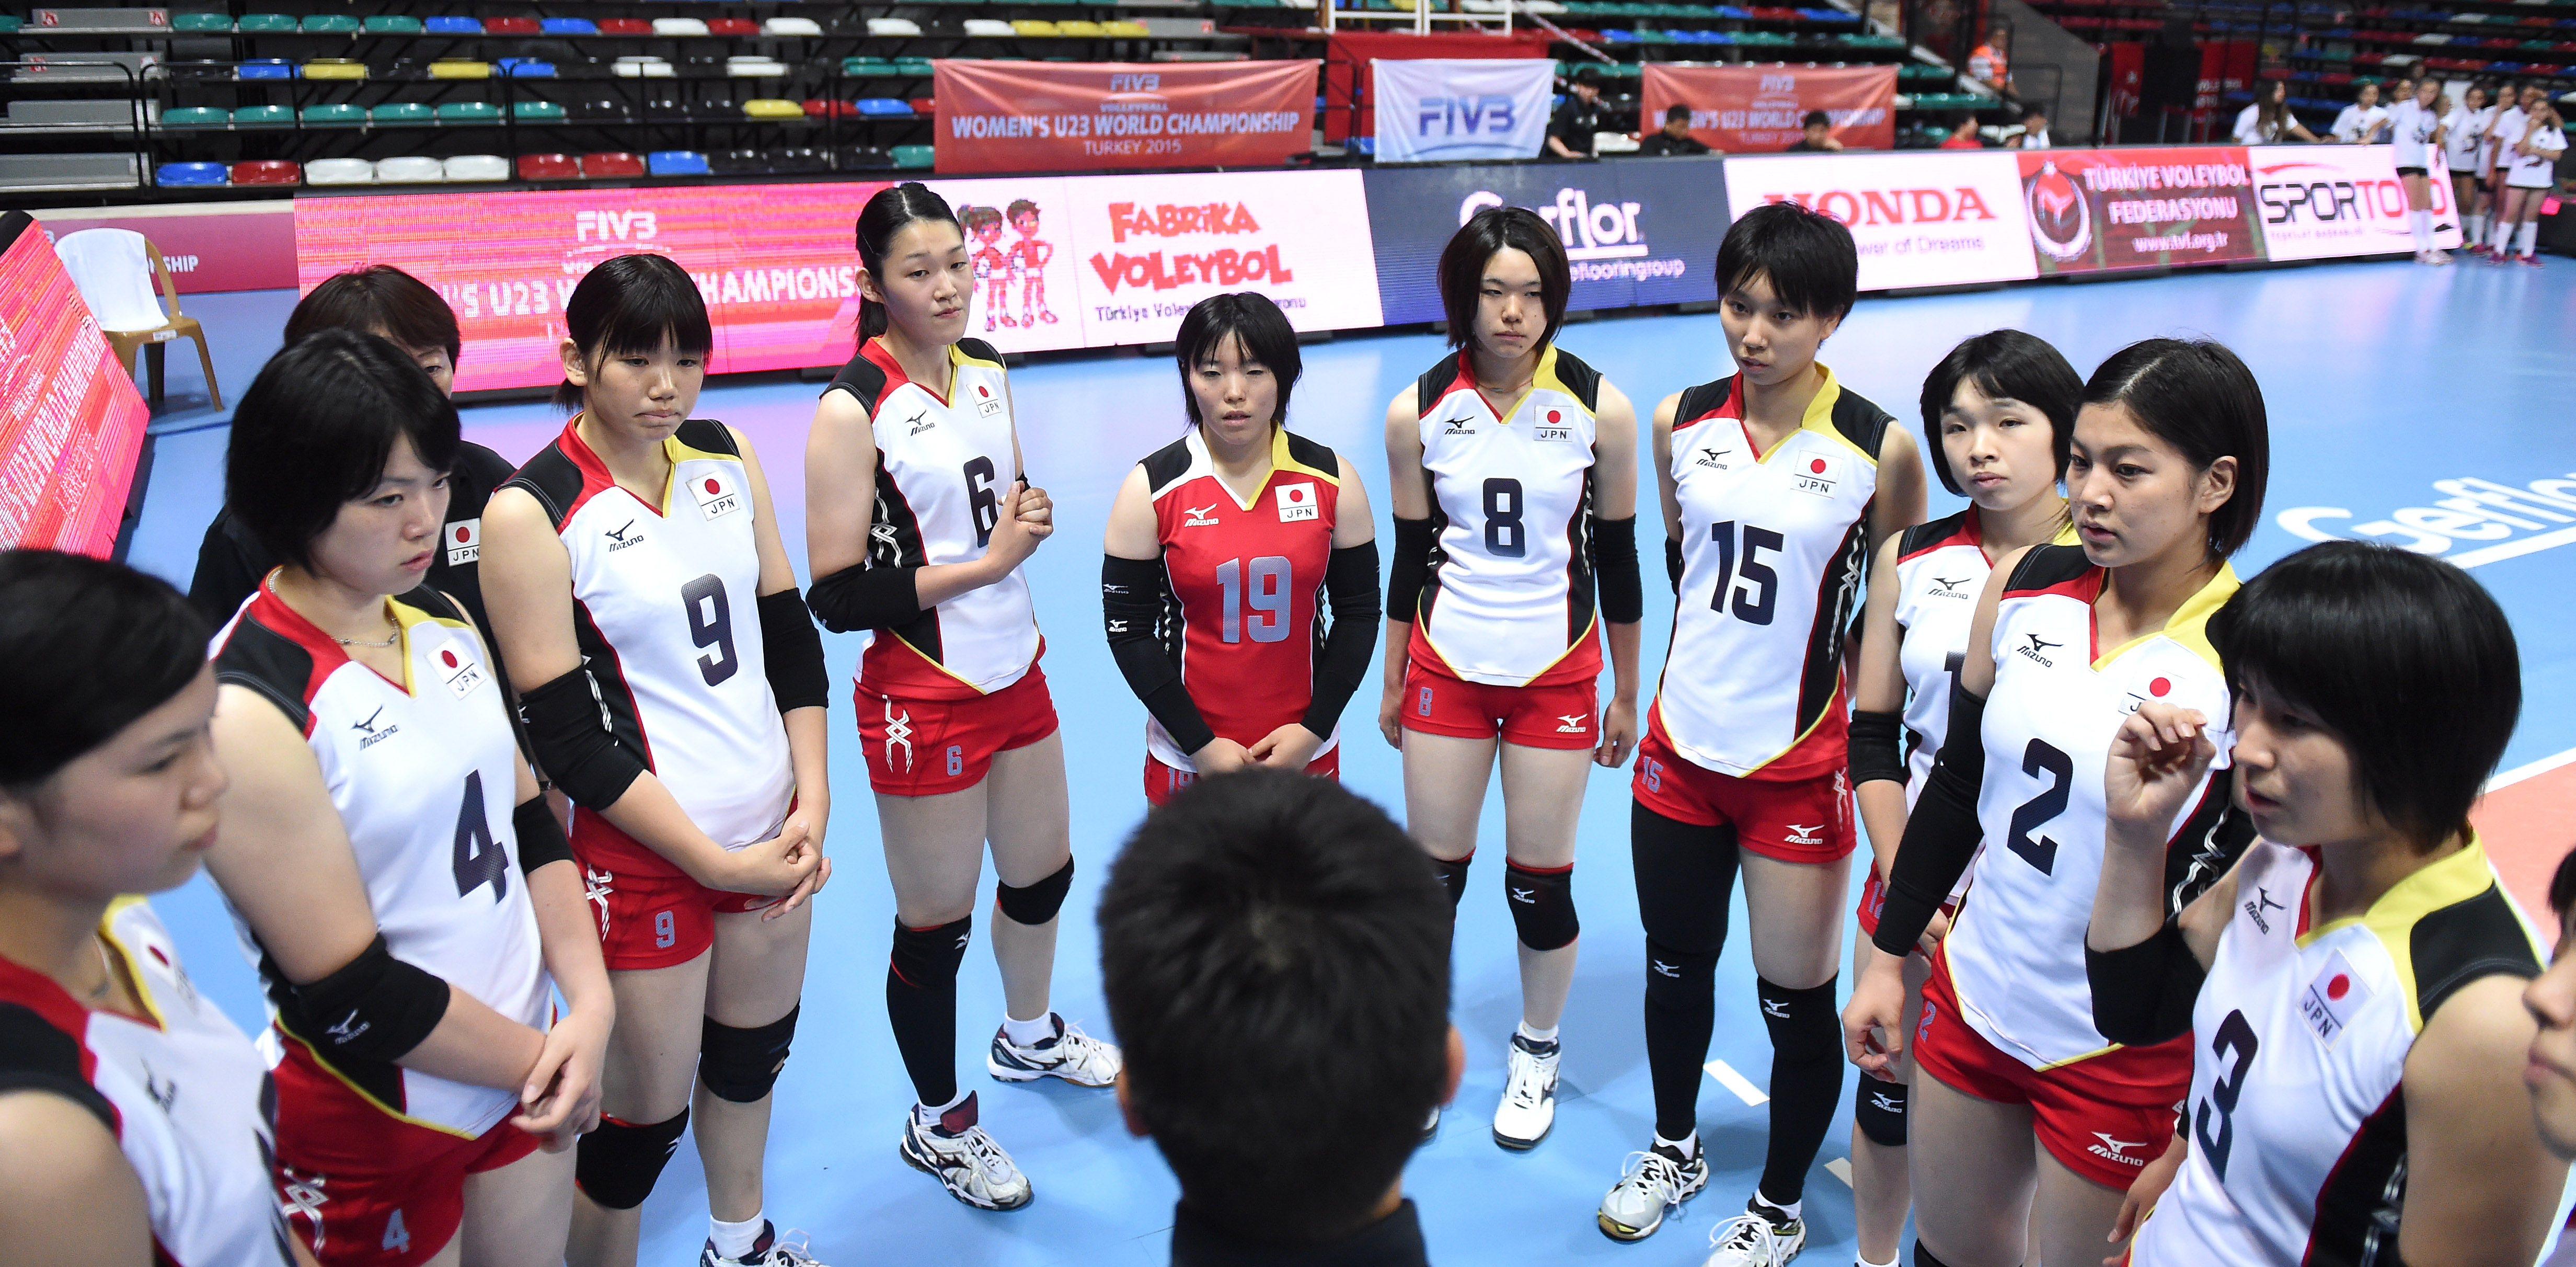 Overview Japan Fivb Volleyball Women S U23 World Championship 2015